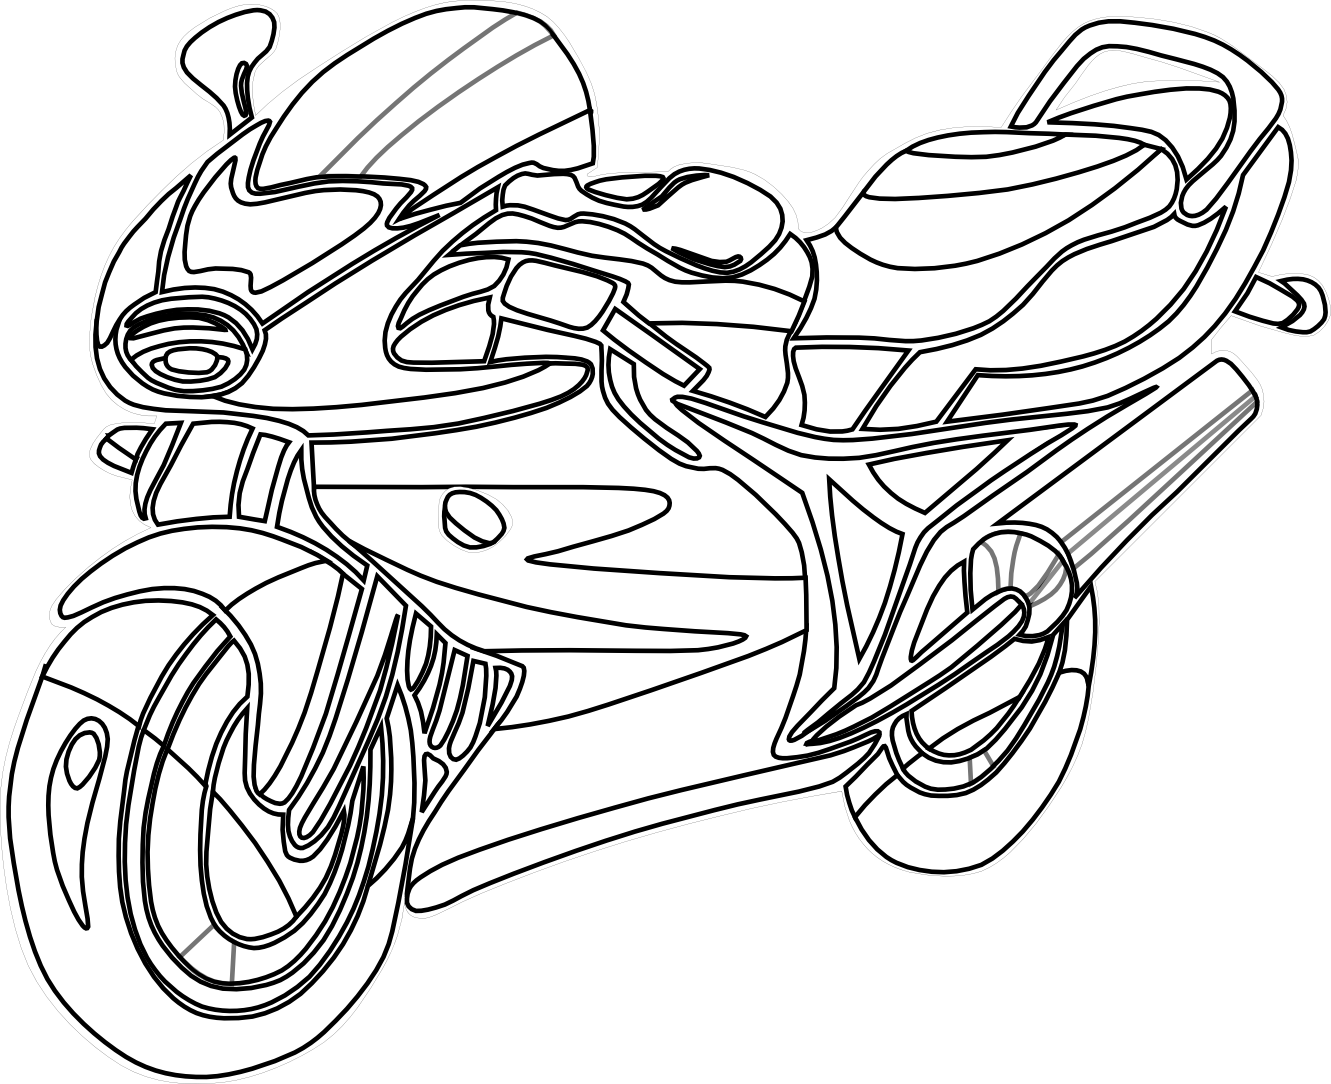 Motorcycle Clipart Black And White | Clipart Panda - Free Clipart Images for Racing Motorcycle Clipart Black And White  35fsj